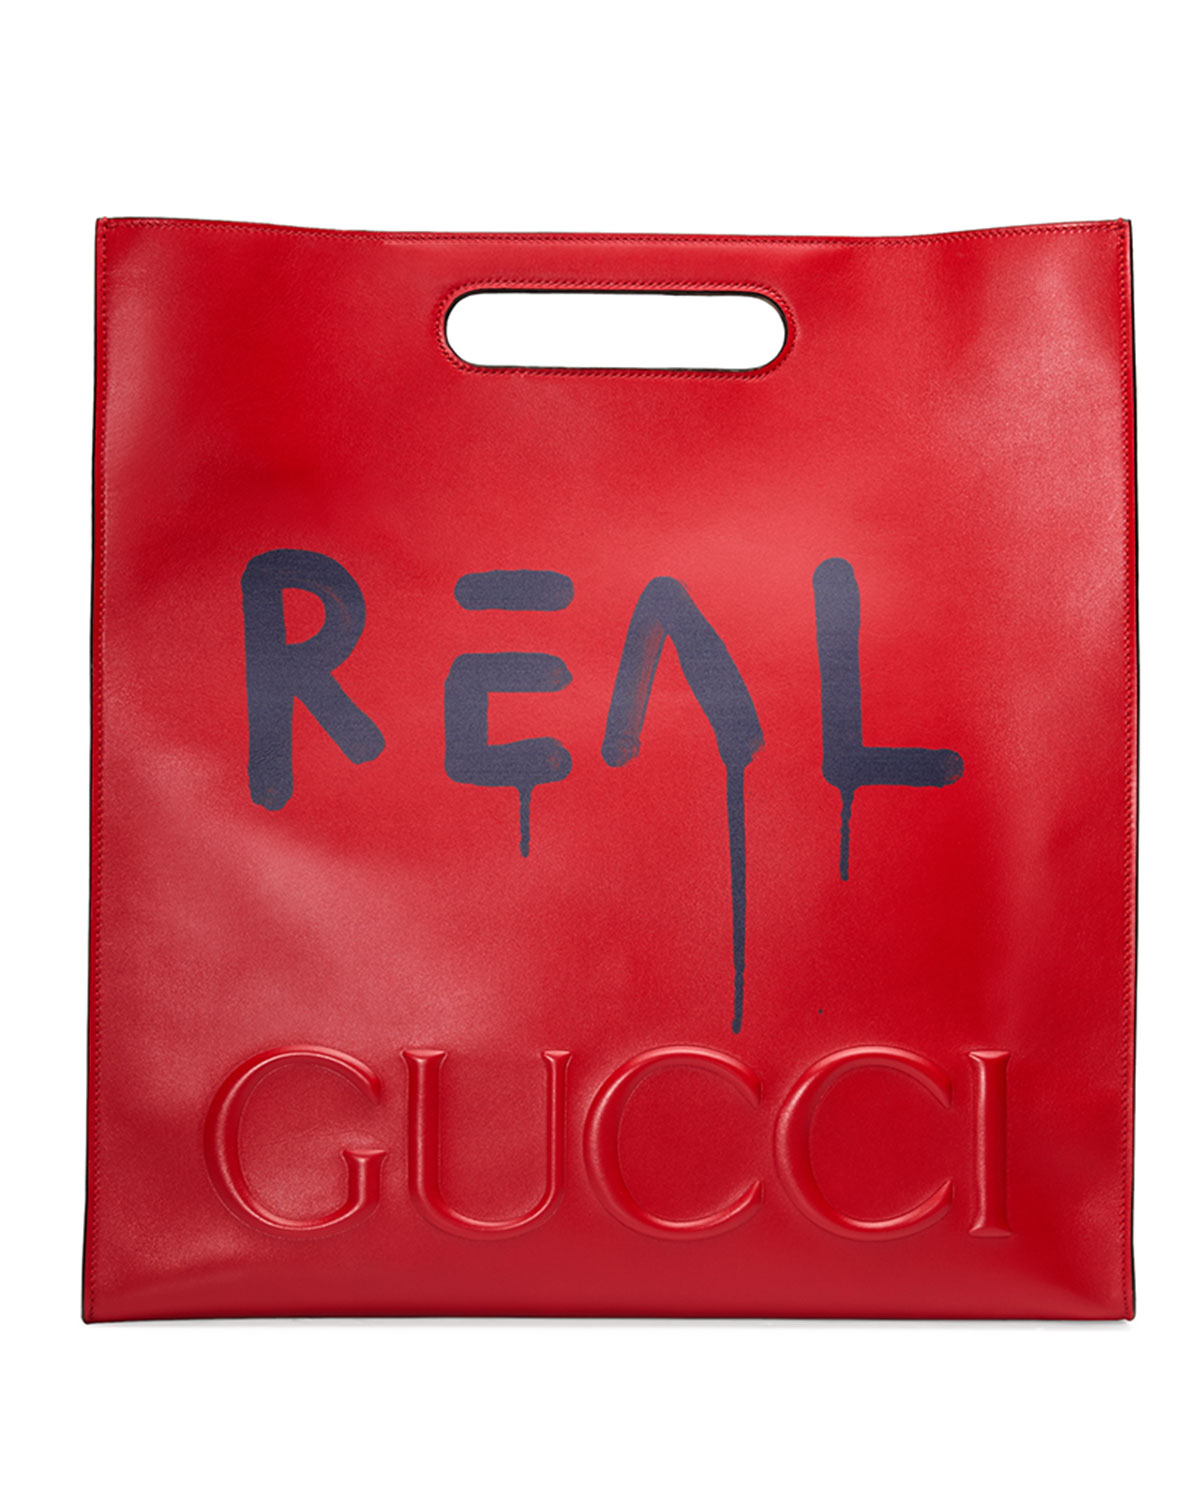 6938d7dd2 Gucci GucciGhost Large Leather Tote Bag